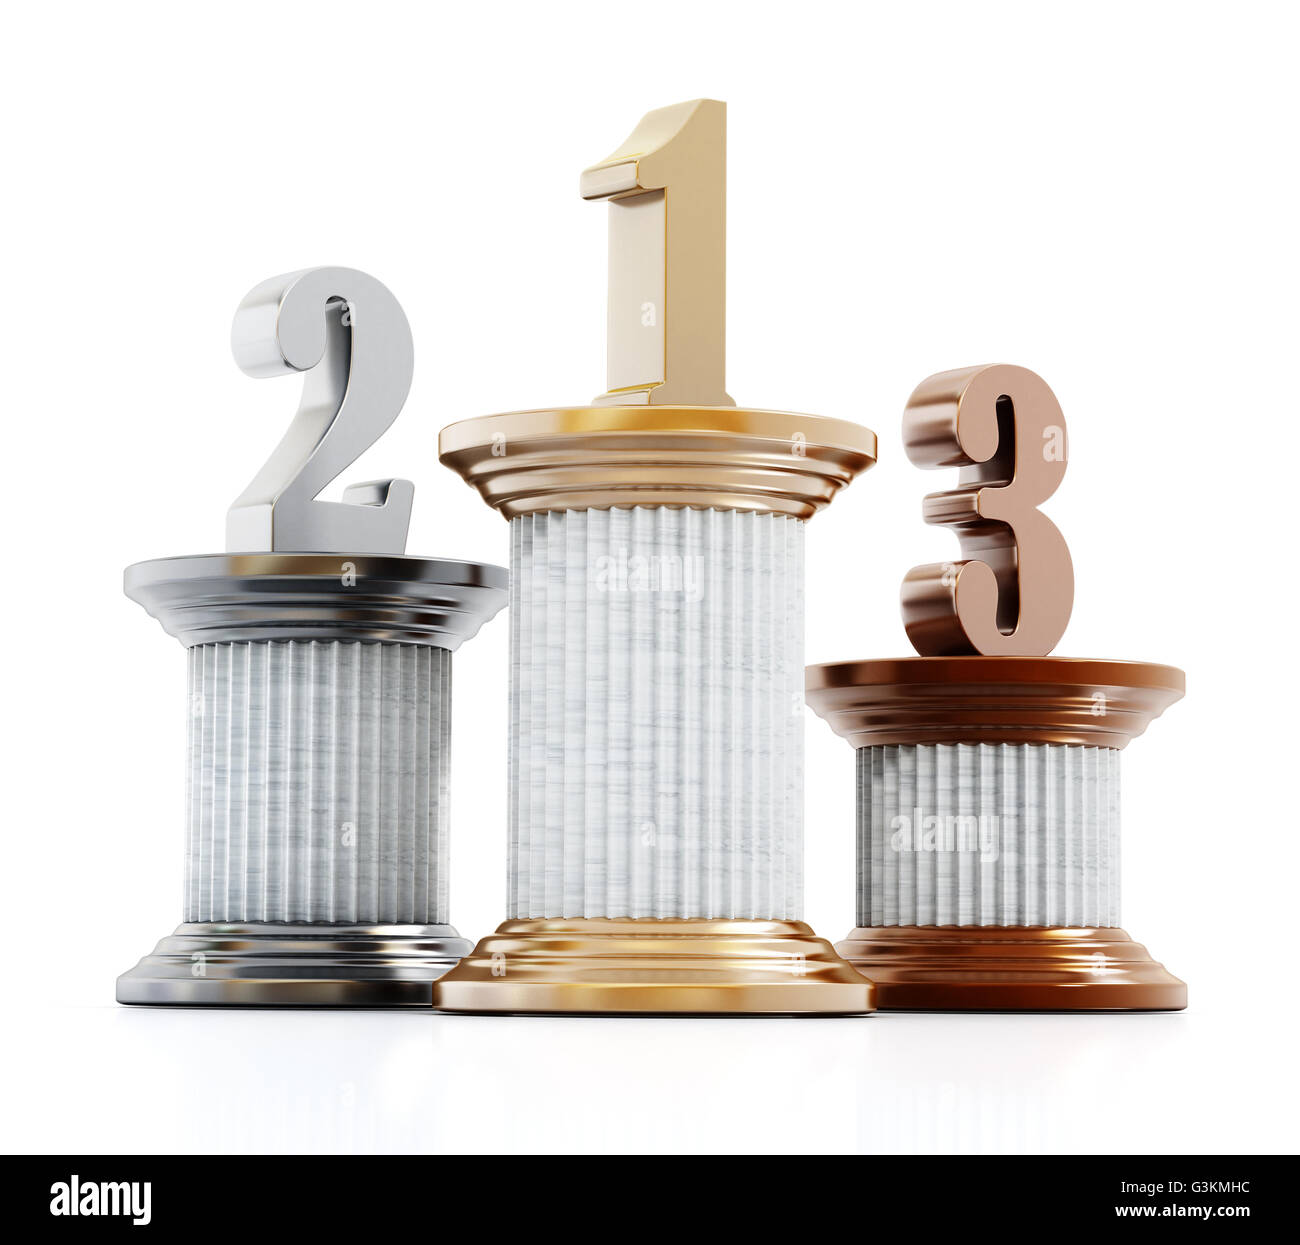 Pillars with one, two and three numbers. 3D illustration. - Stock Image